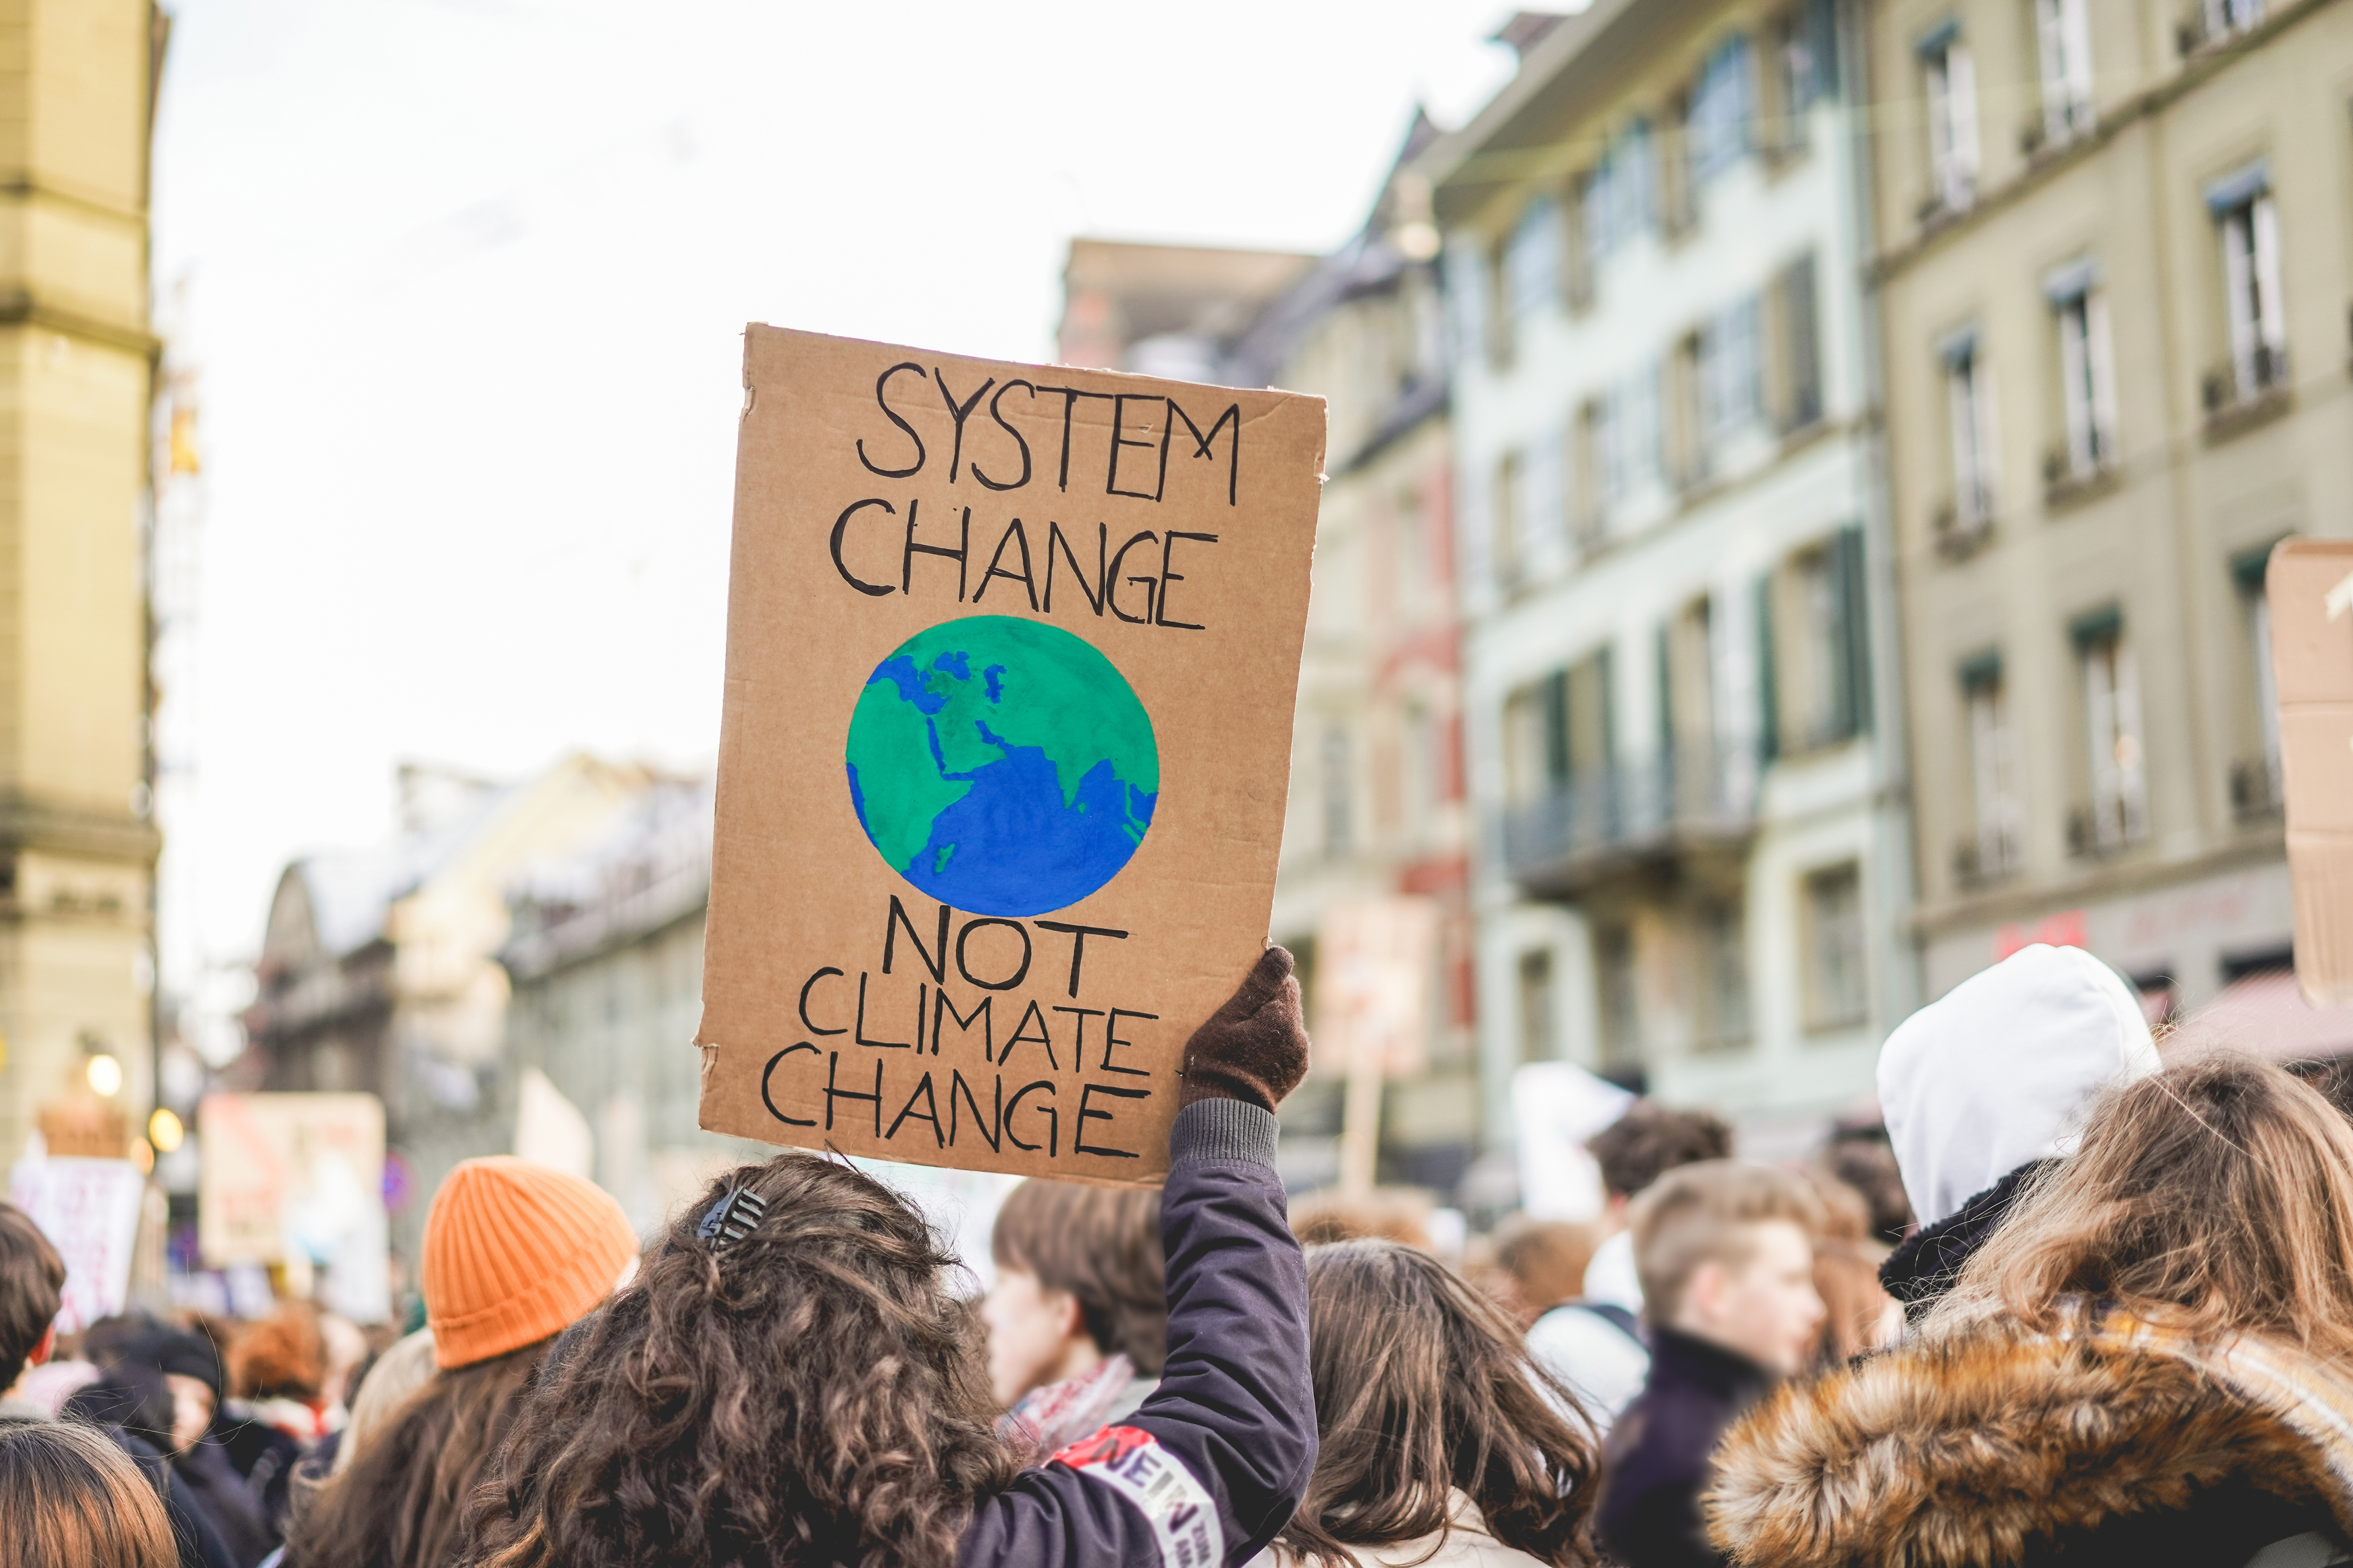 Climate demonstration with system change placard